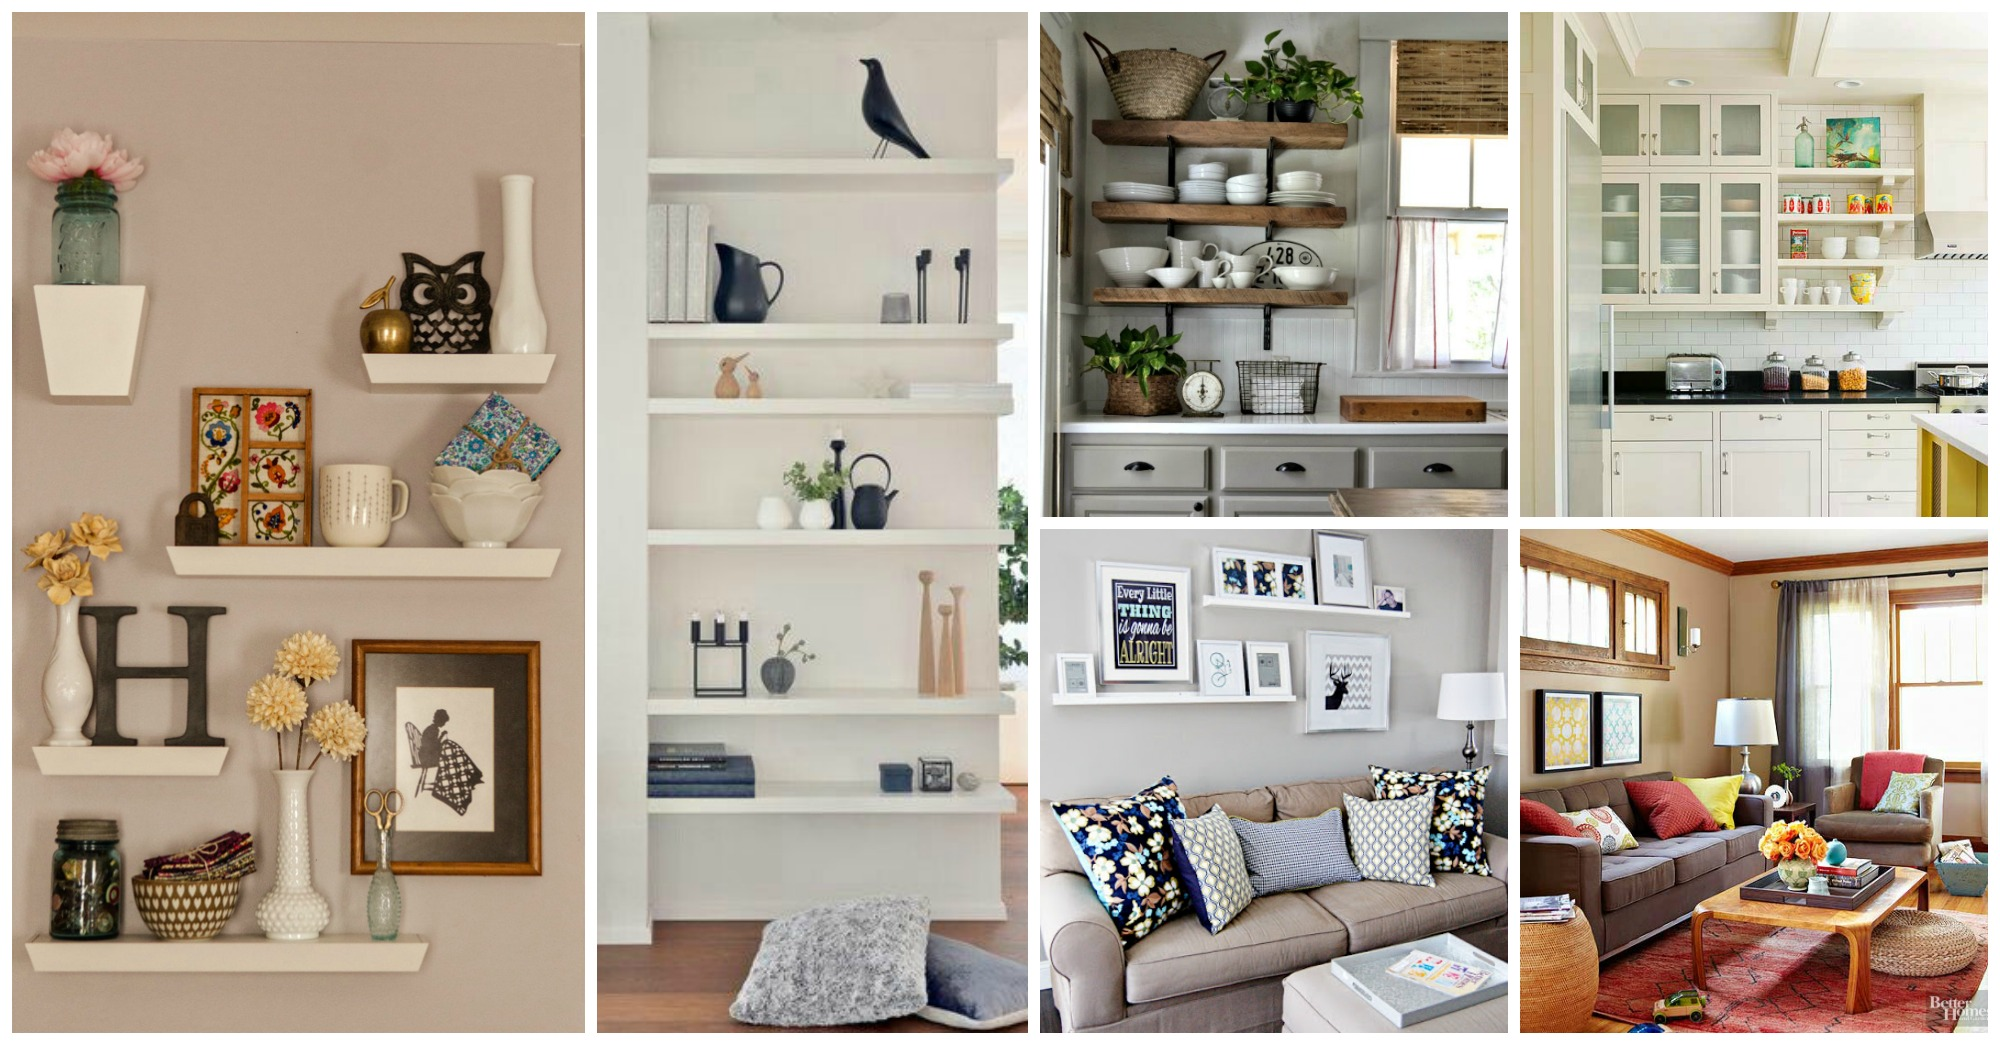 5 Decorating Items That Can Only Clutter Your Small Space